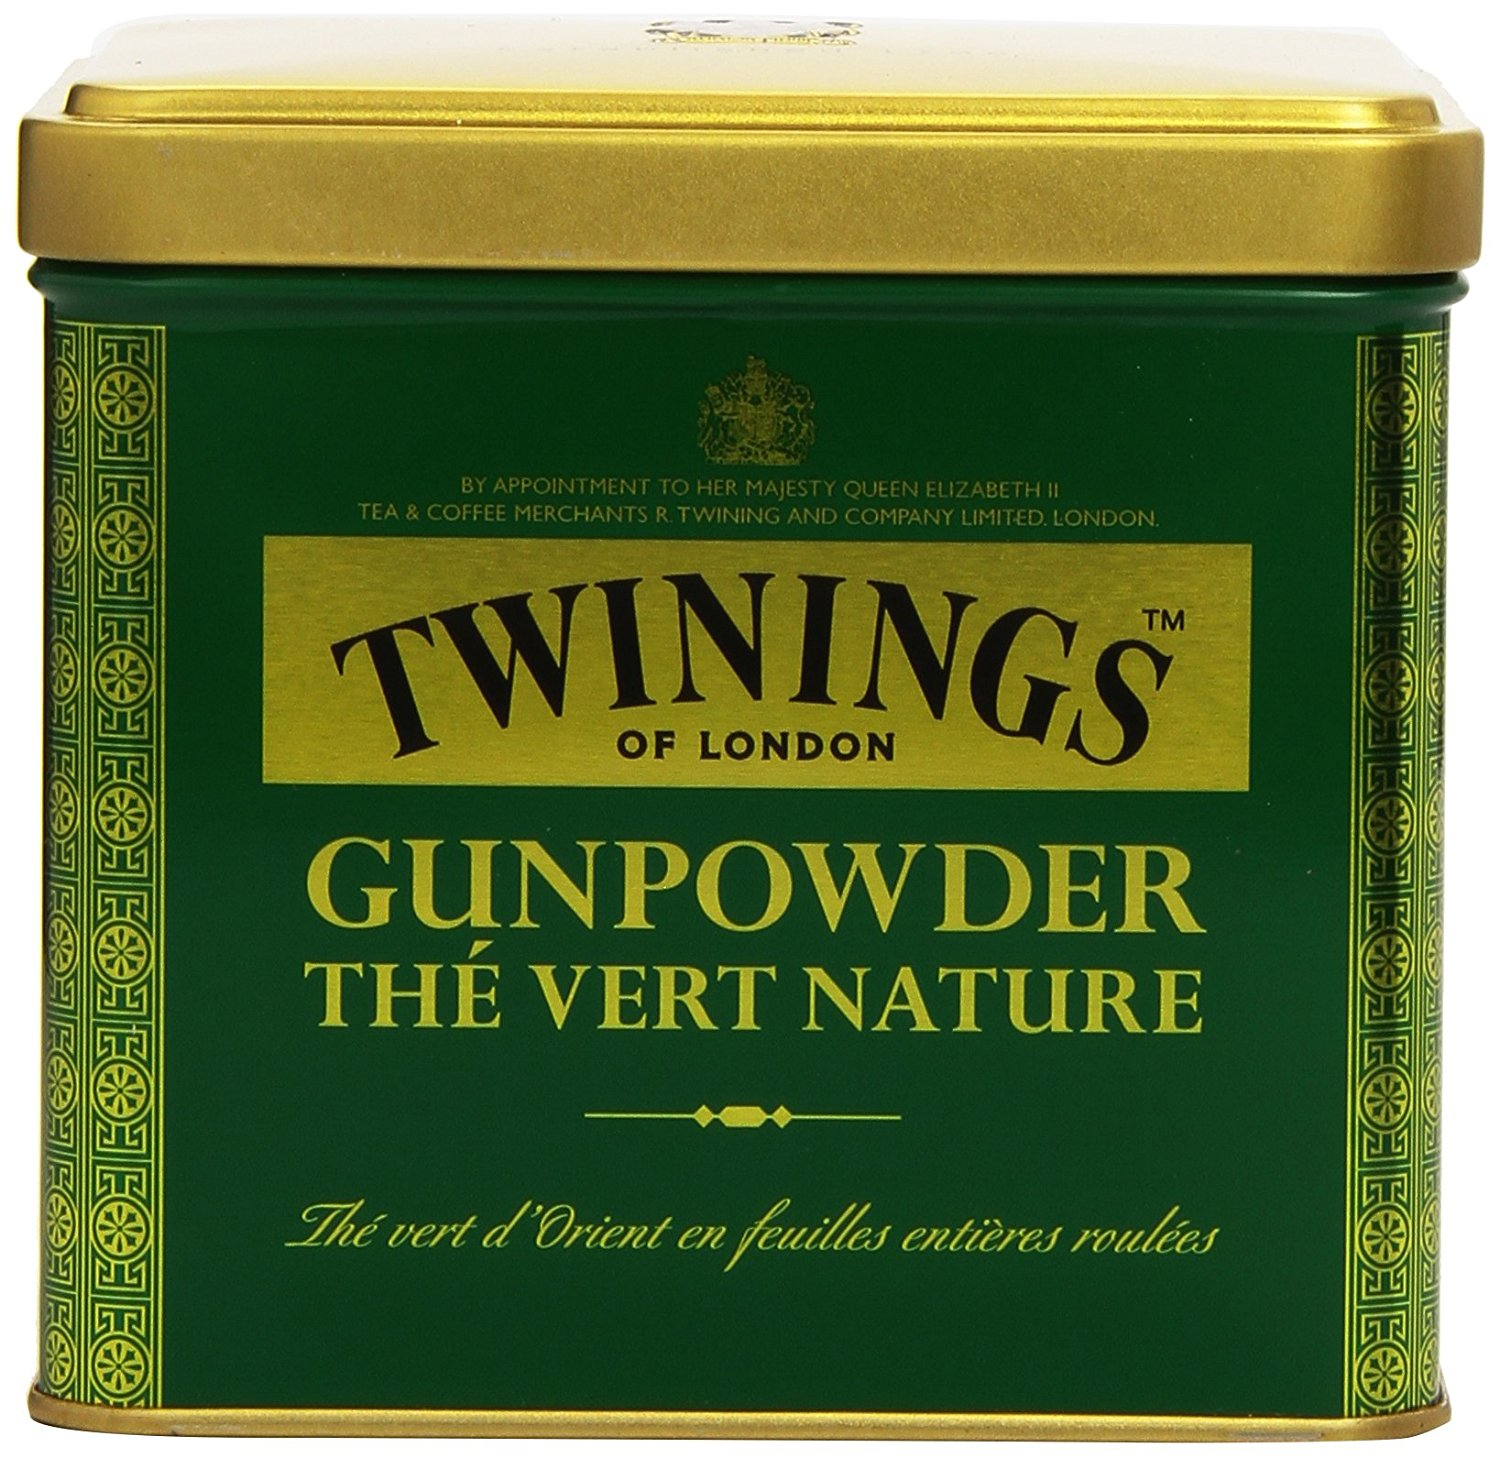 the vert special gunpowder